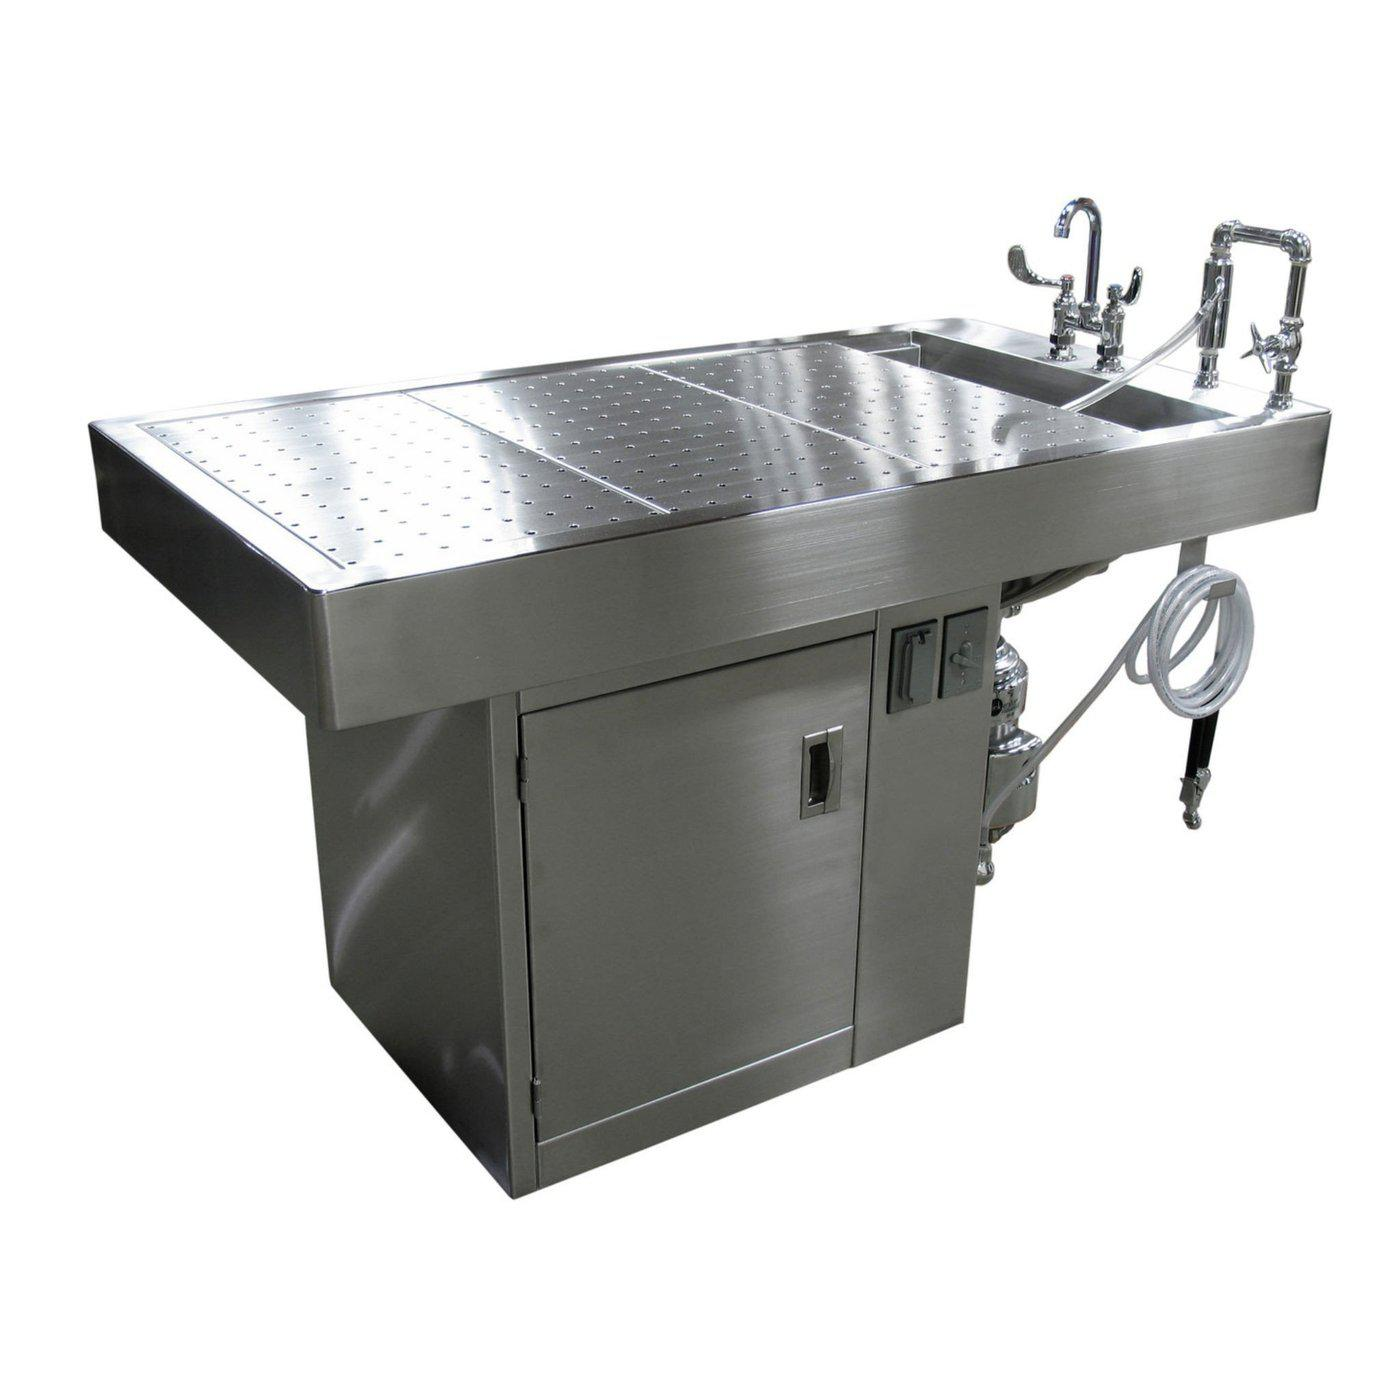 Small Animal Necropsy Table-Necropsy Dissection Tables-Mortech Manufacturing Company Inc. Quality Stainless Steel Autopsy, Morgue, Funeral Home, Necropsy, Veterinary / Anatomy, Dissection Equipment and Accessories